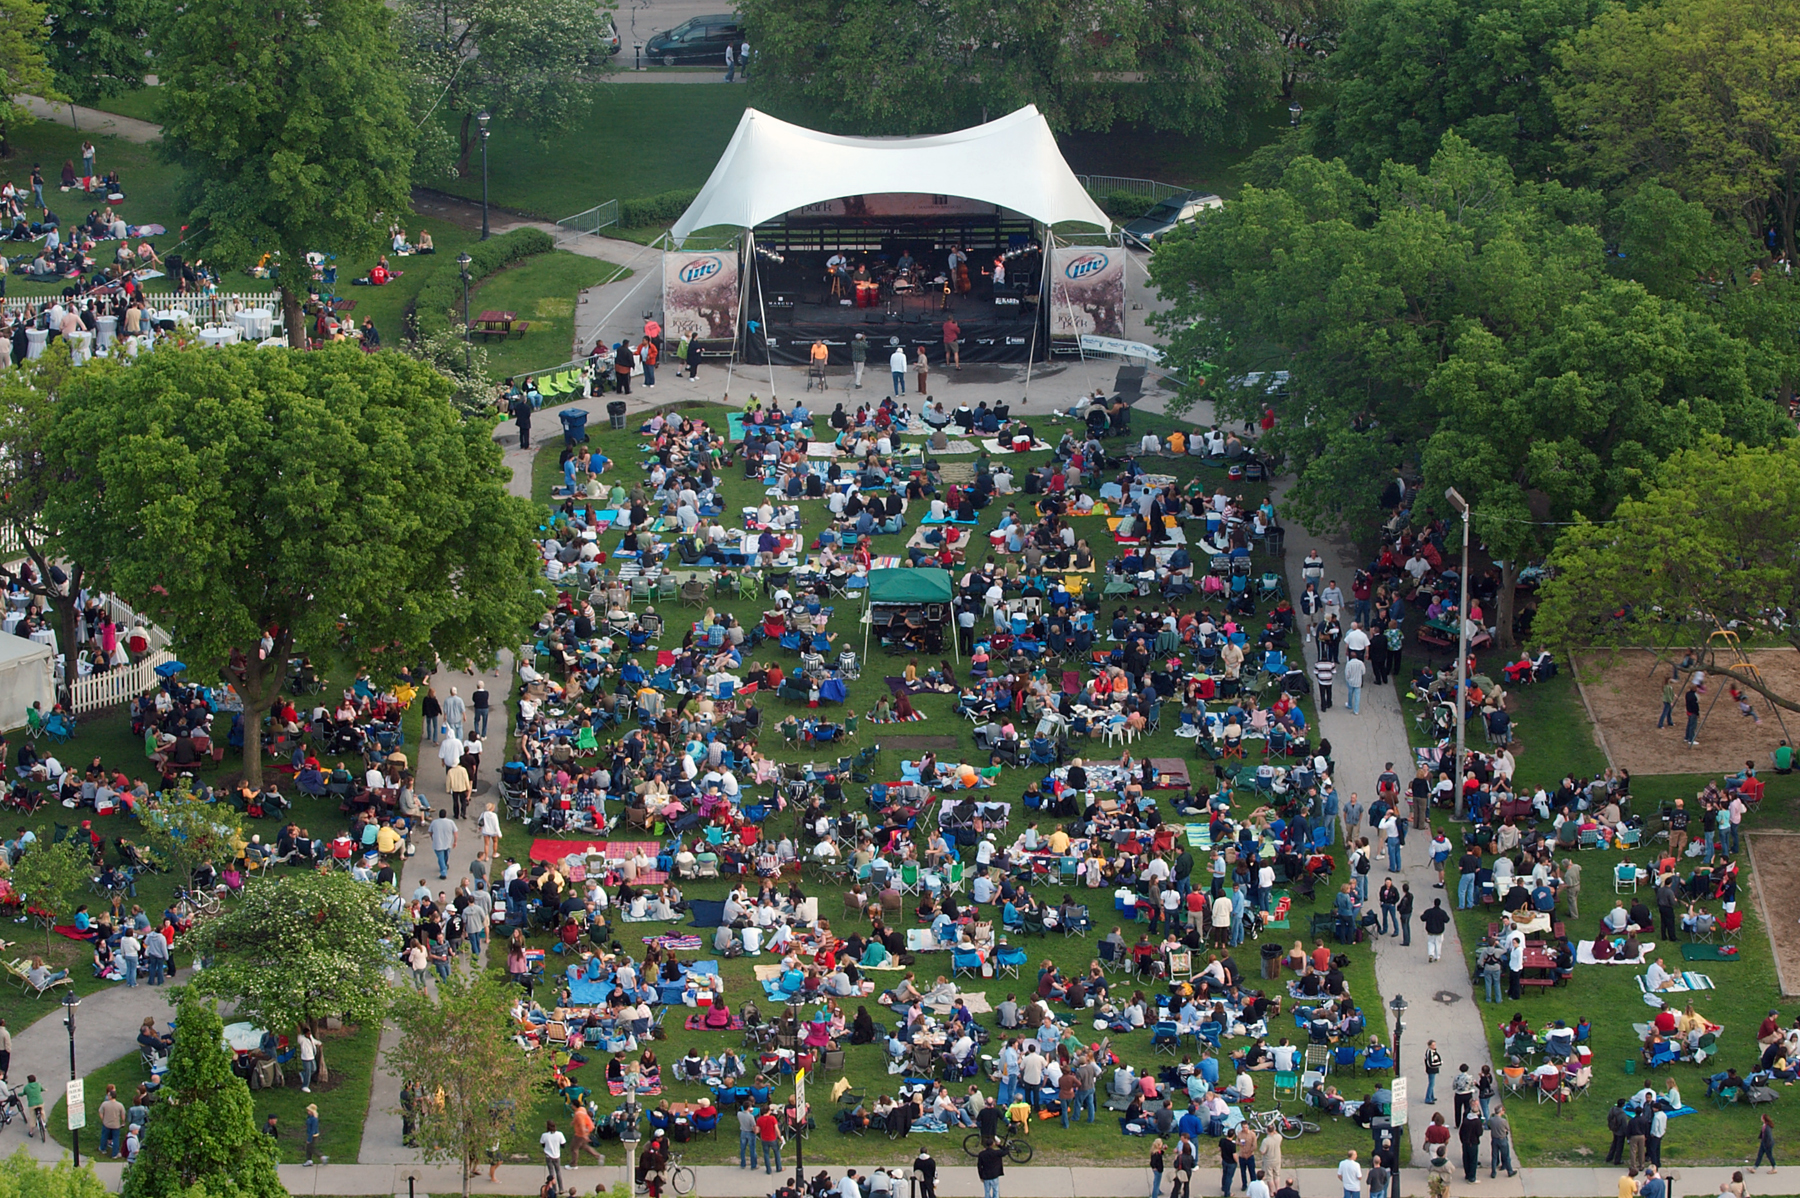 Free Summer Concerts Series July 2012 Shorewest Latest